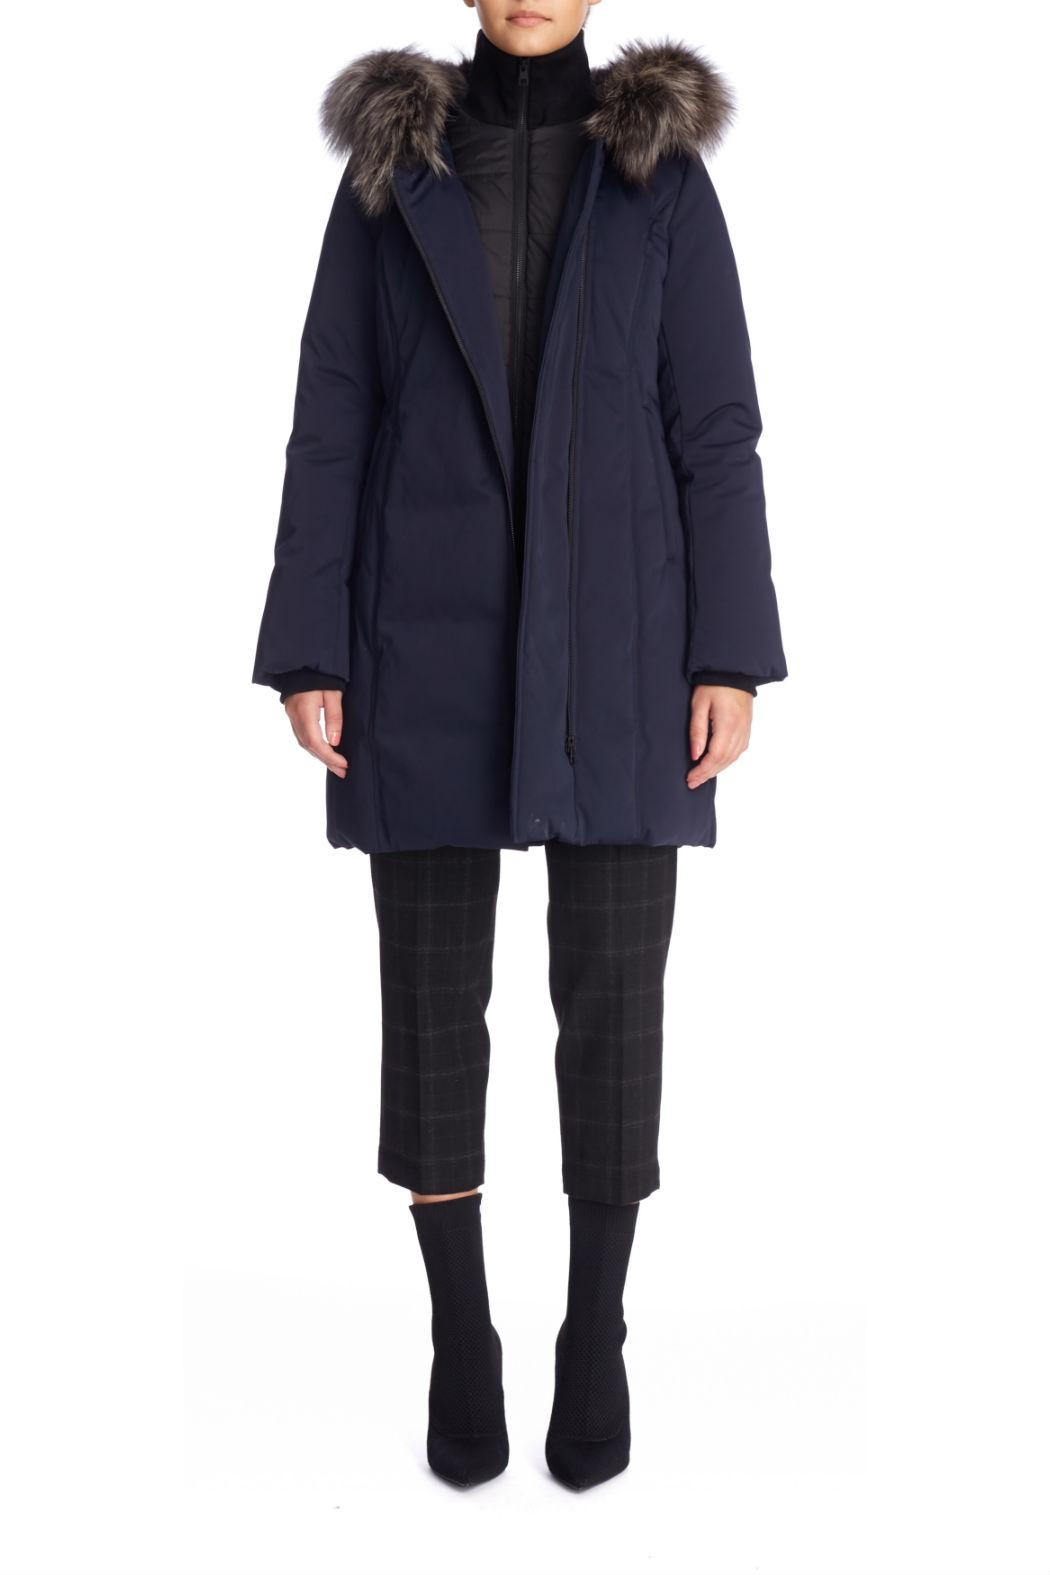 Soia & Kyo Salma Fx Down Coat - Back Cropped Image